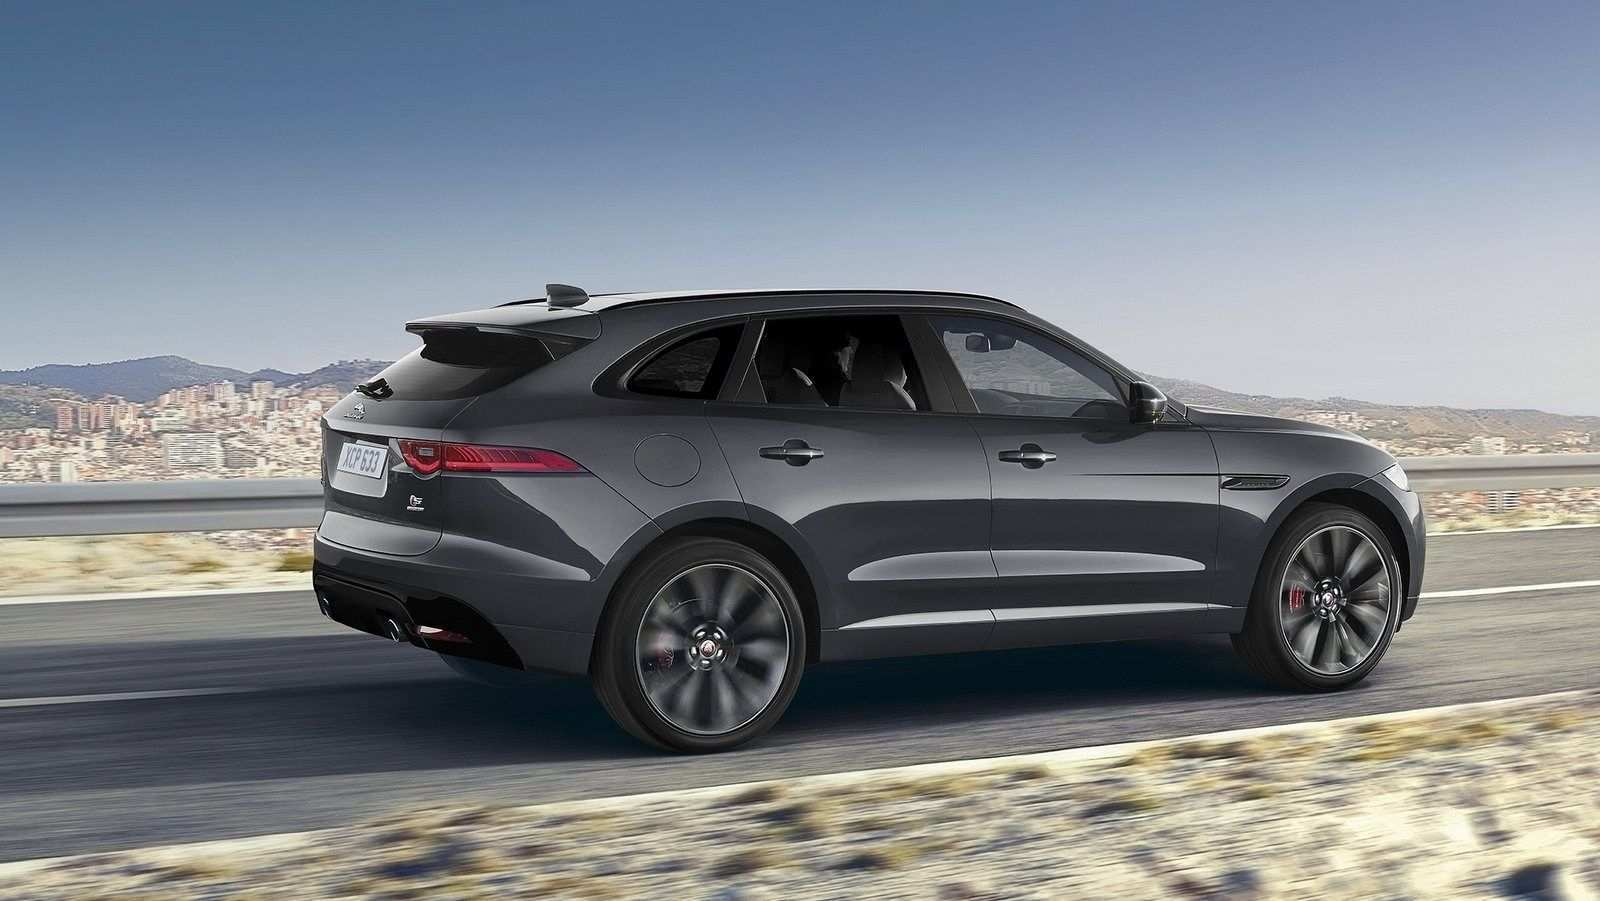 42 Concept of Jaguar F Pace 2020 New Concept Price for Jaguar F Pace 2020 New Concept